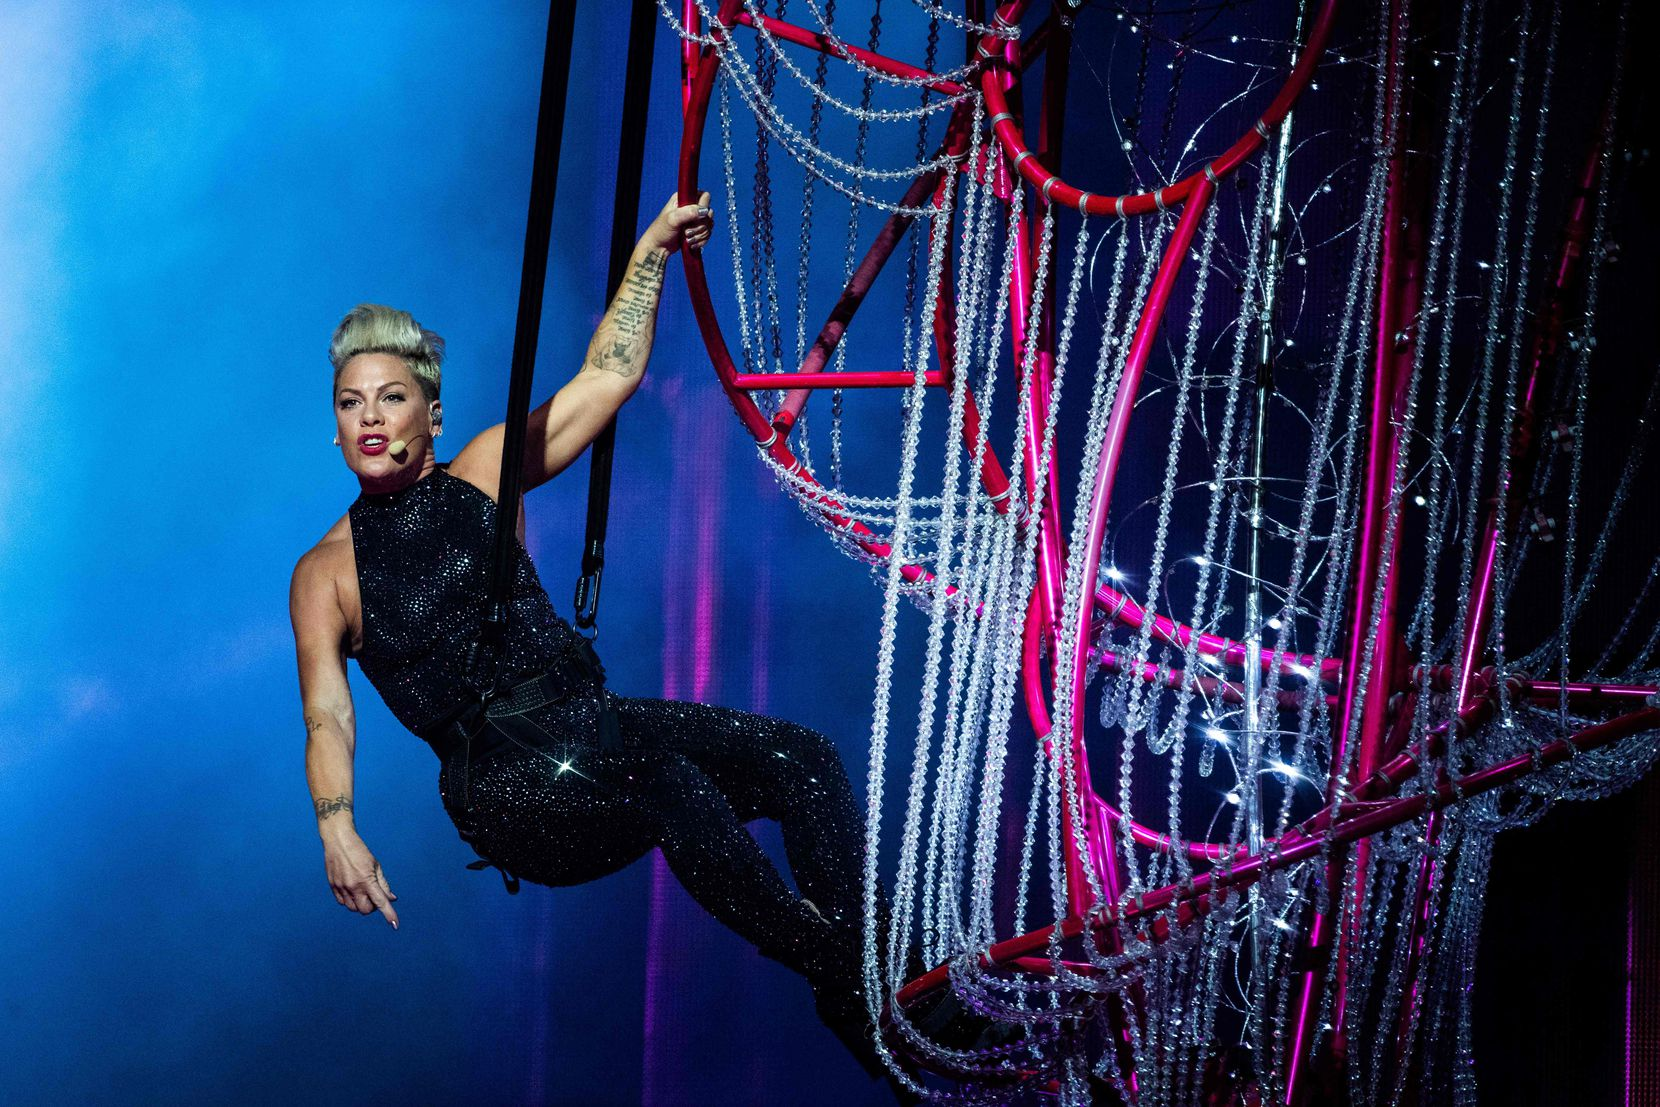 Pop singer Pink has been known to tour with extensive stage gear resembling a circus trapeze act.